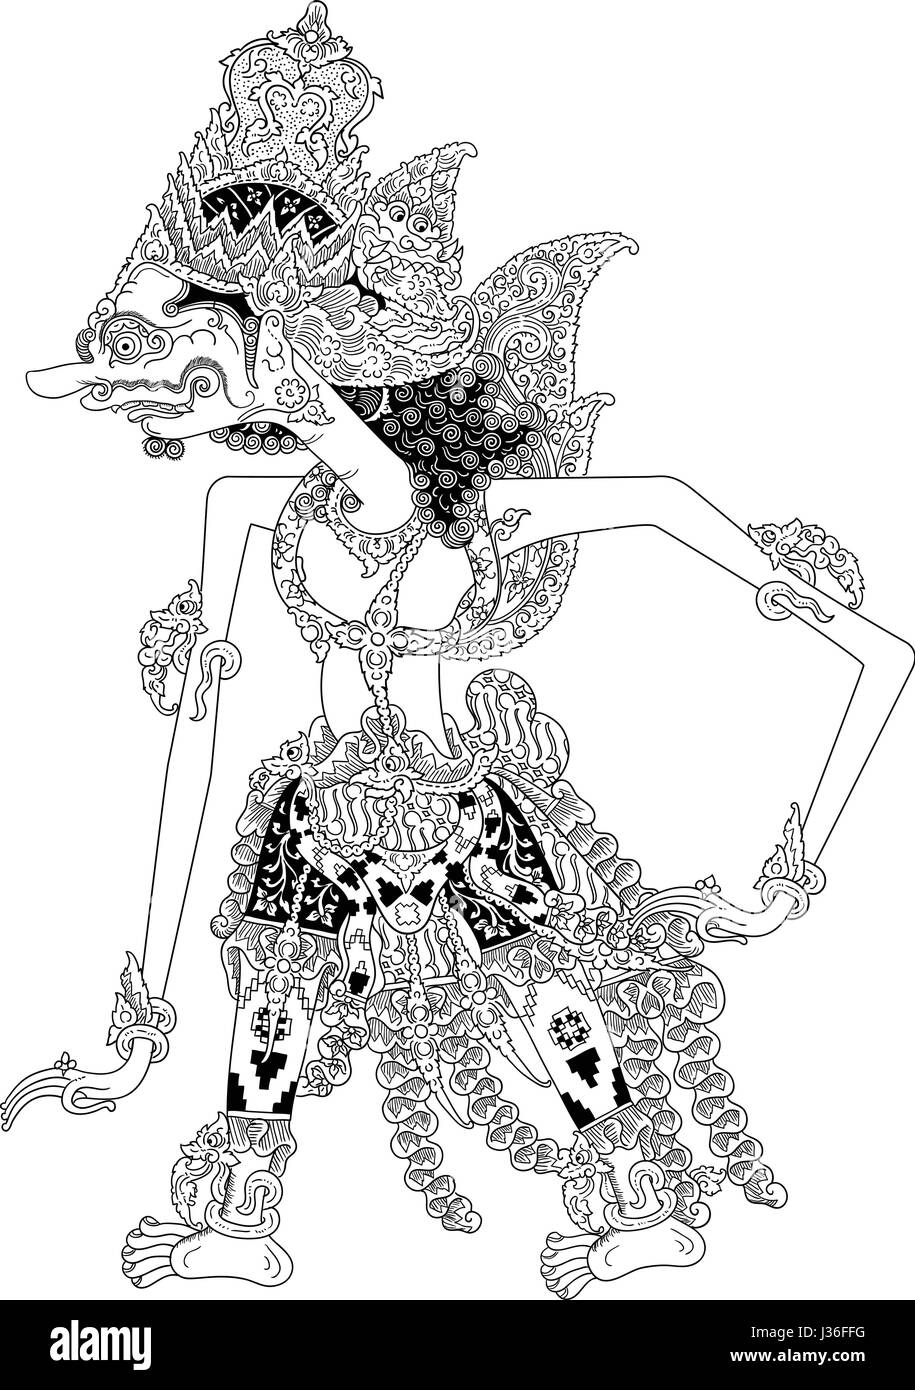 Darmawasesa, a character of traditional puppet show, wayang kulit from java indonesia. - Stock Image